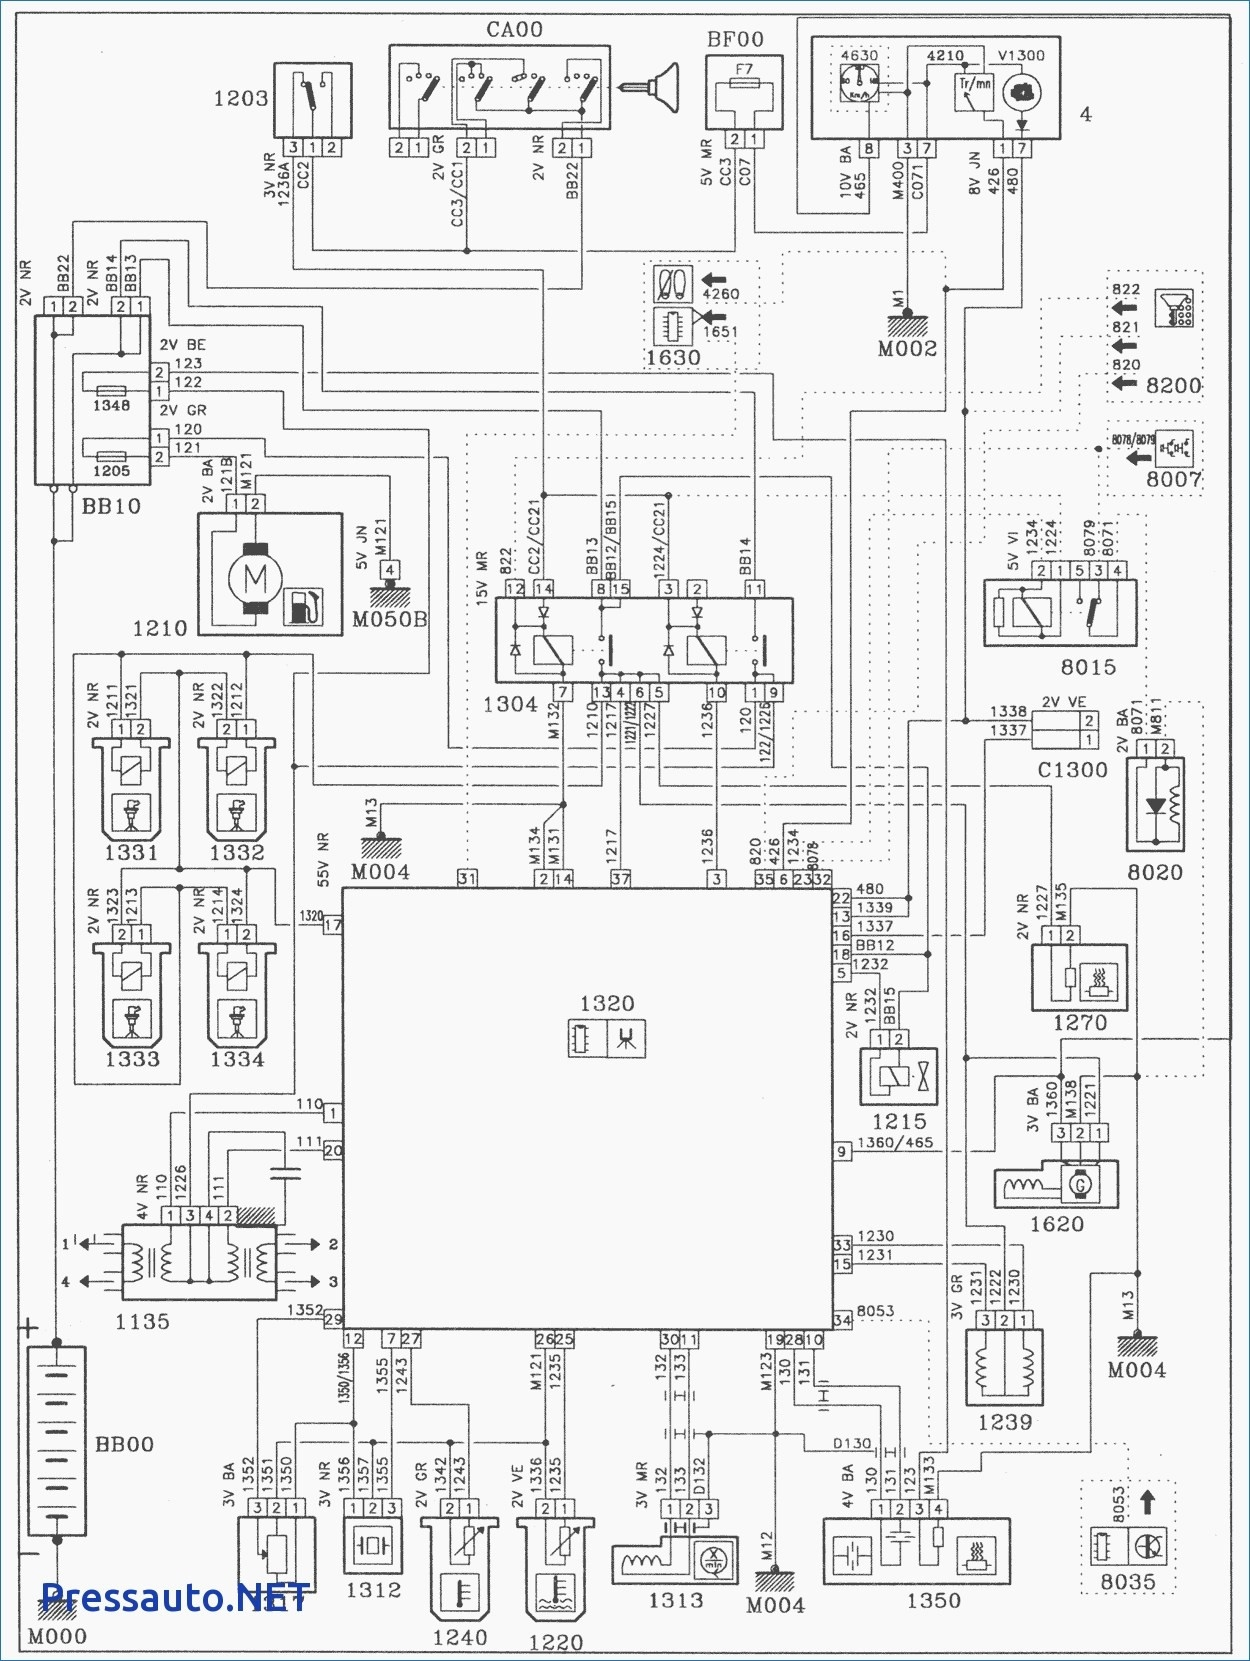 Air Pressor Pressure Switch Diagram Engine Wiring